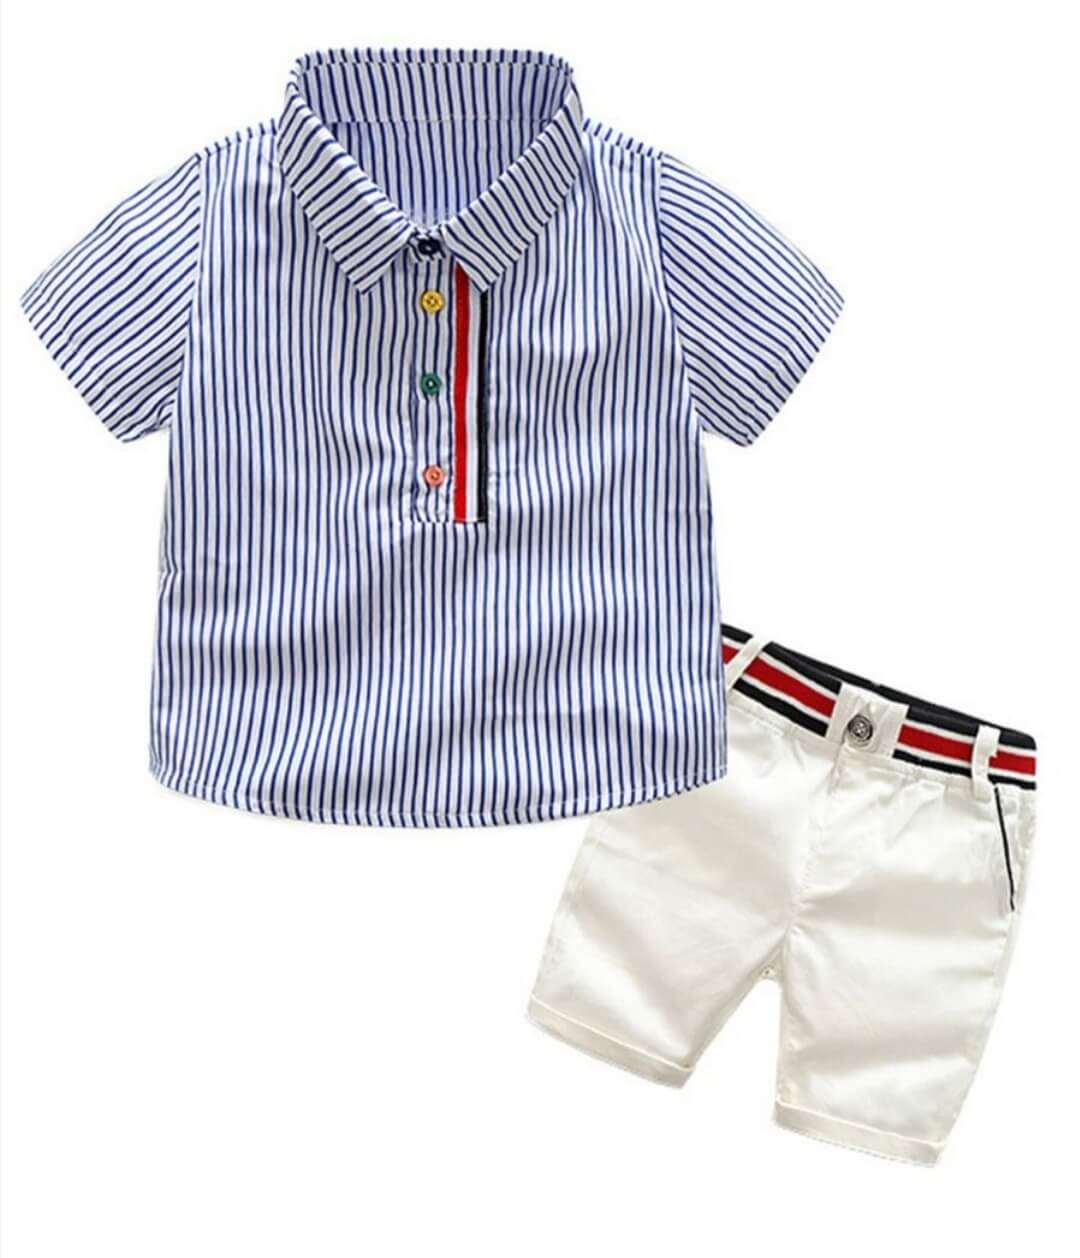 2 piece summer casual outfit stripe shirt with matching white shorts